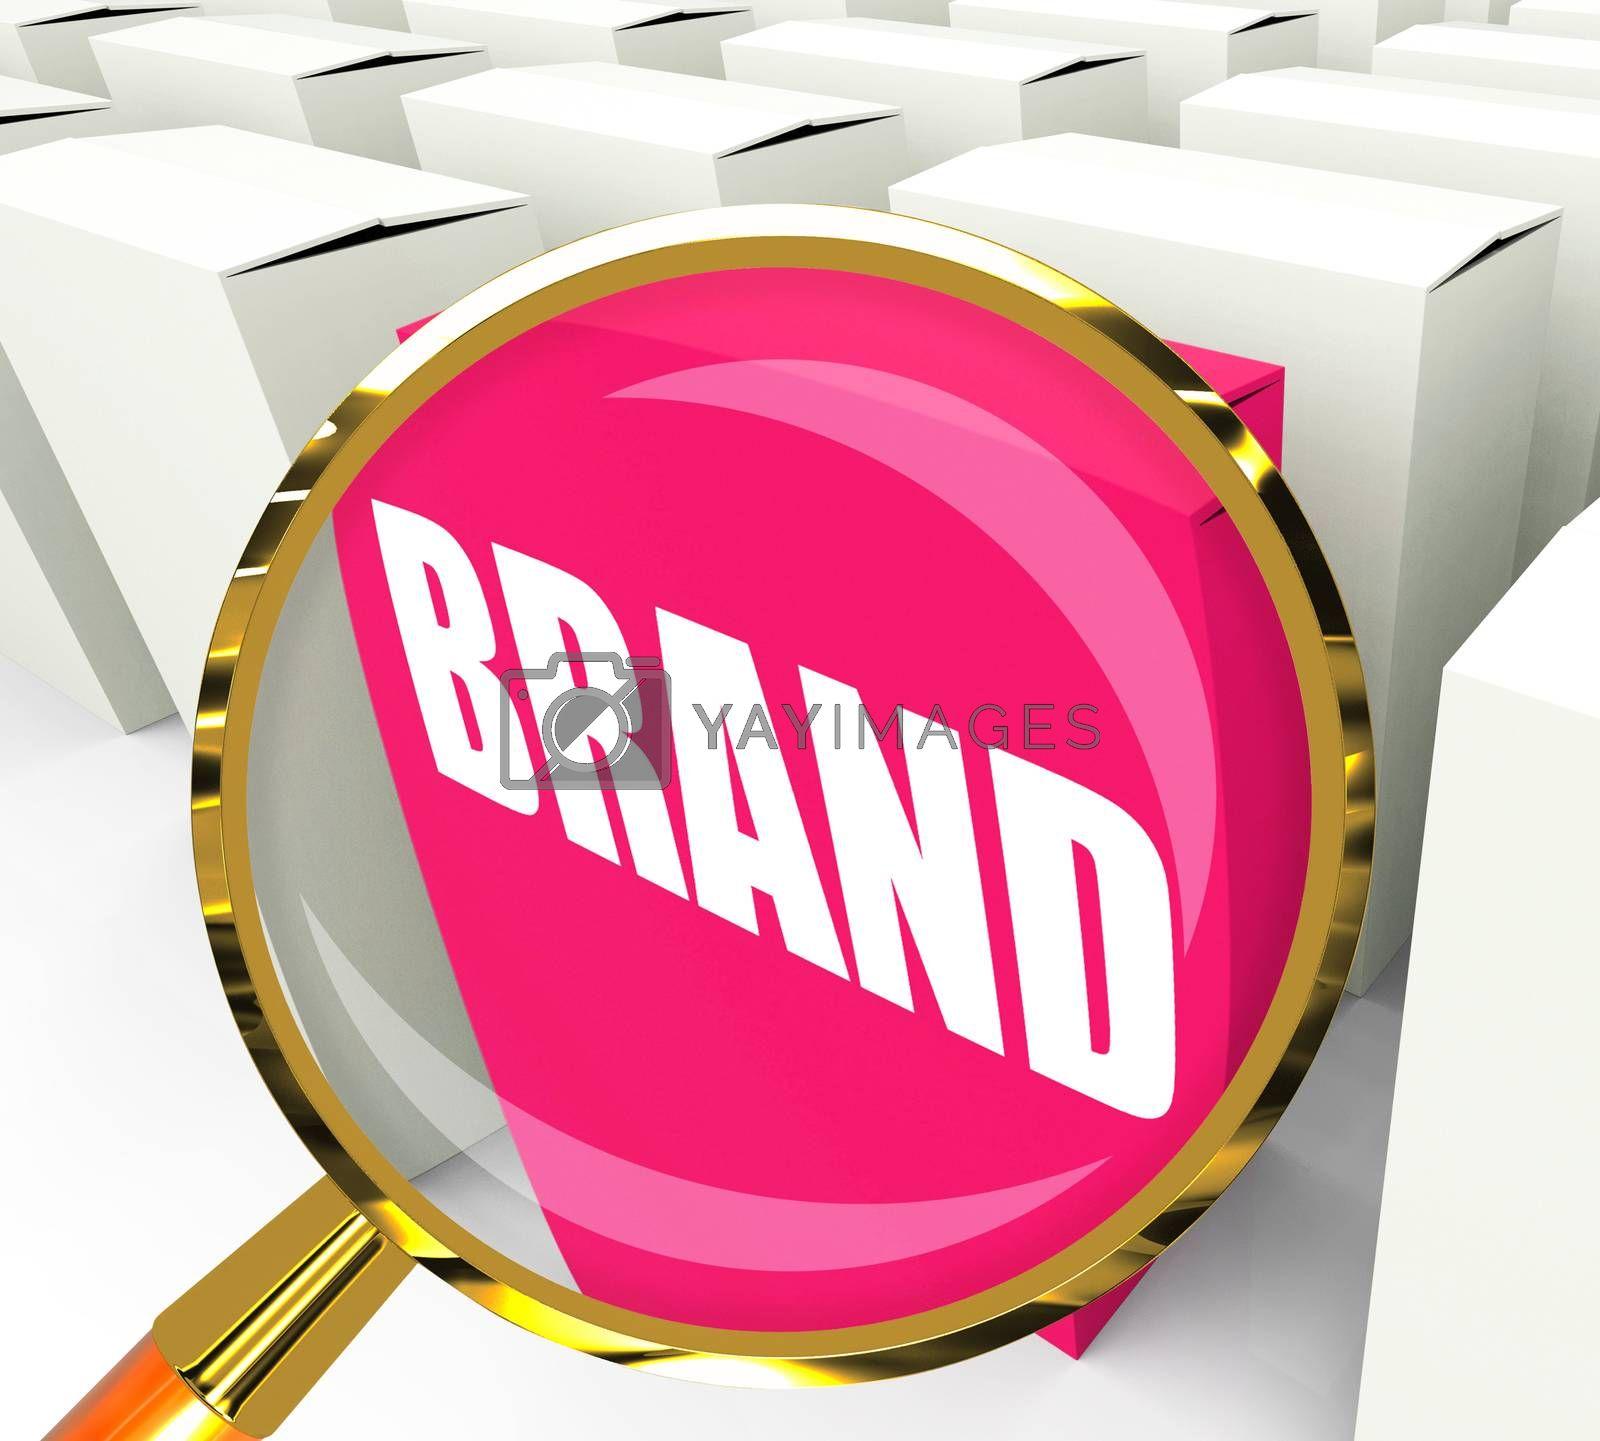 Brand Packet Refers to Branding Marketing and Labels by stuartmiles